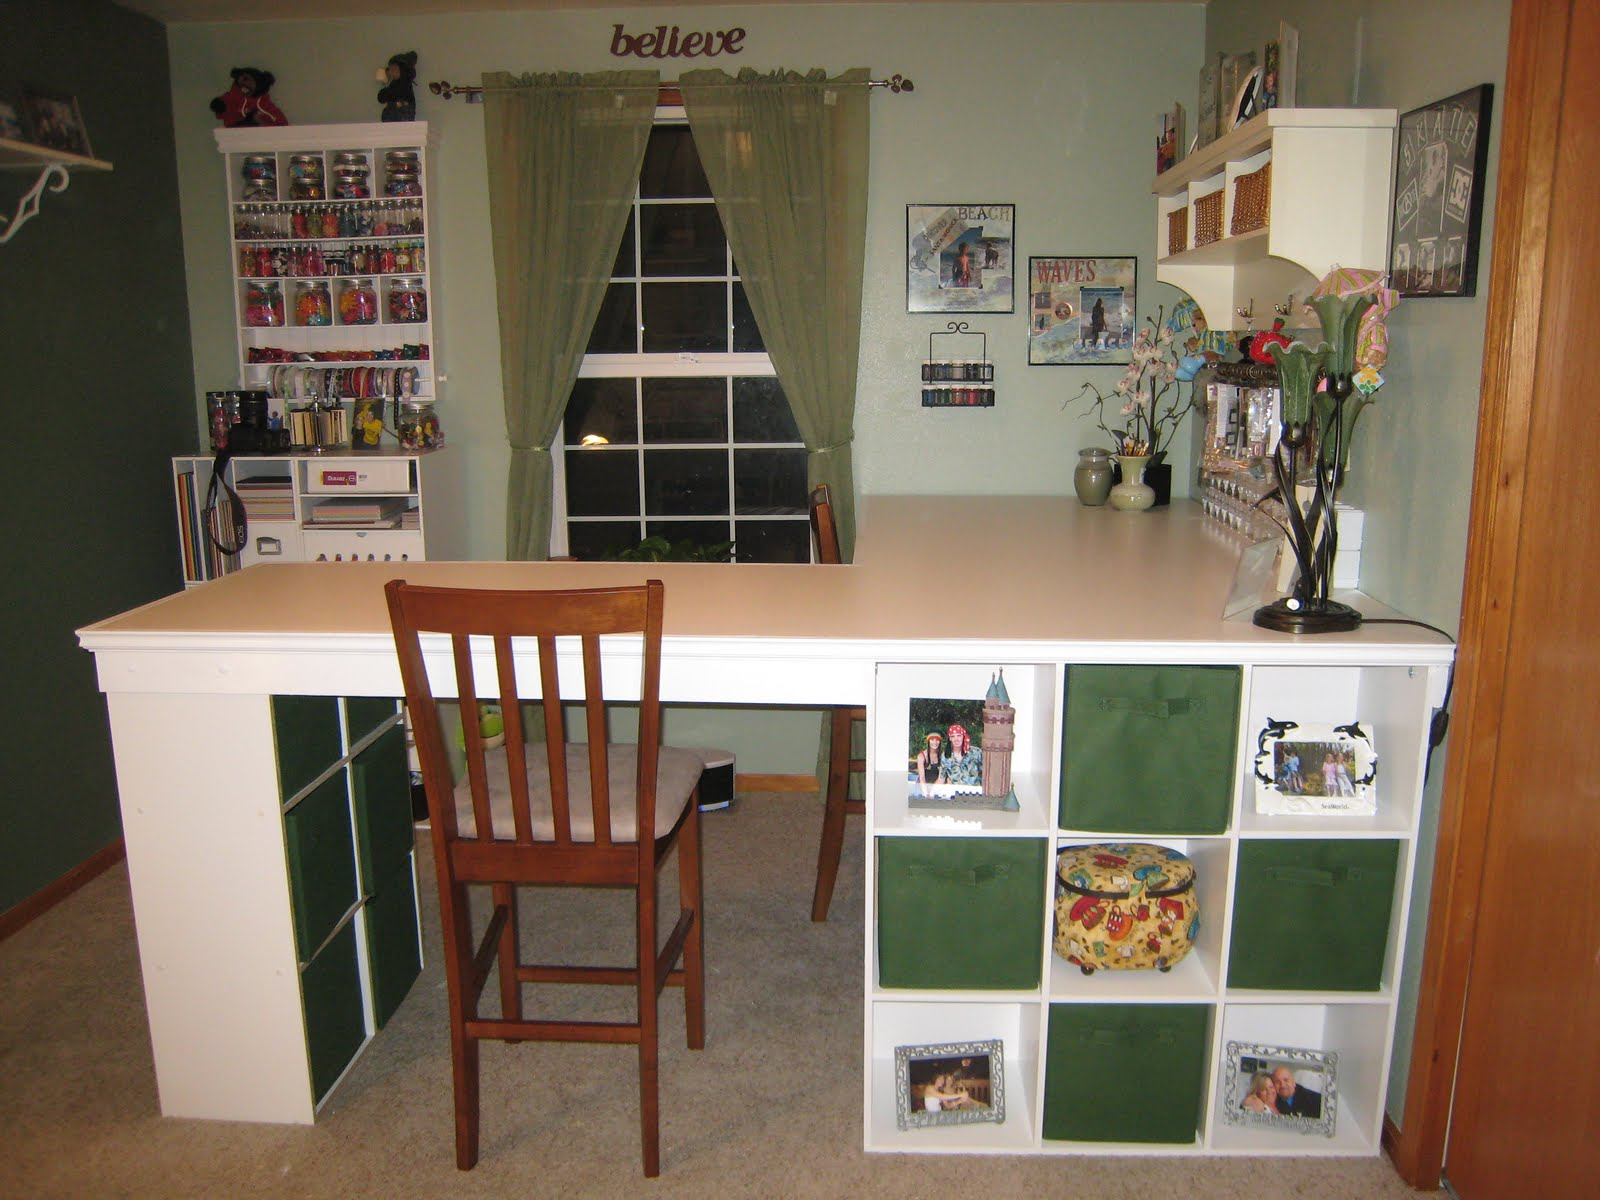 Storage For Craft Room: DO IT YOURSELF WHITE CRAFT DESK: HOW TO BUILD A CUSTOM